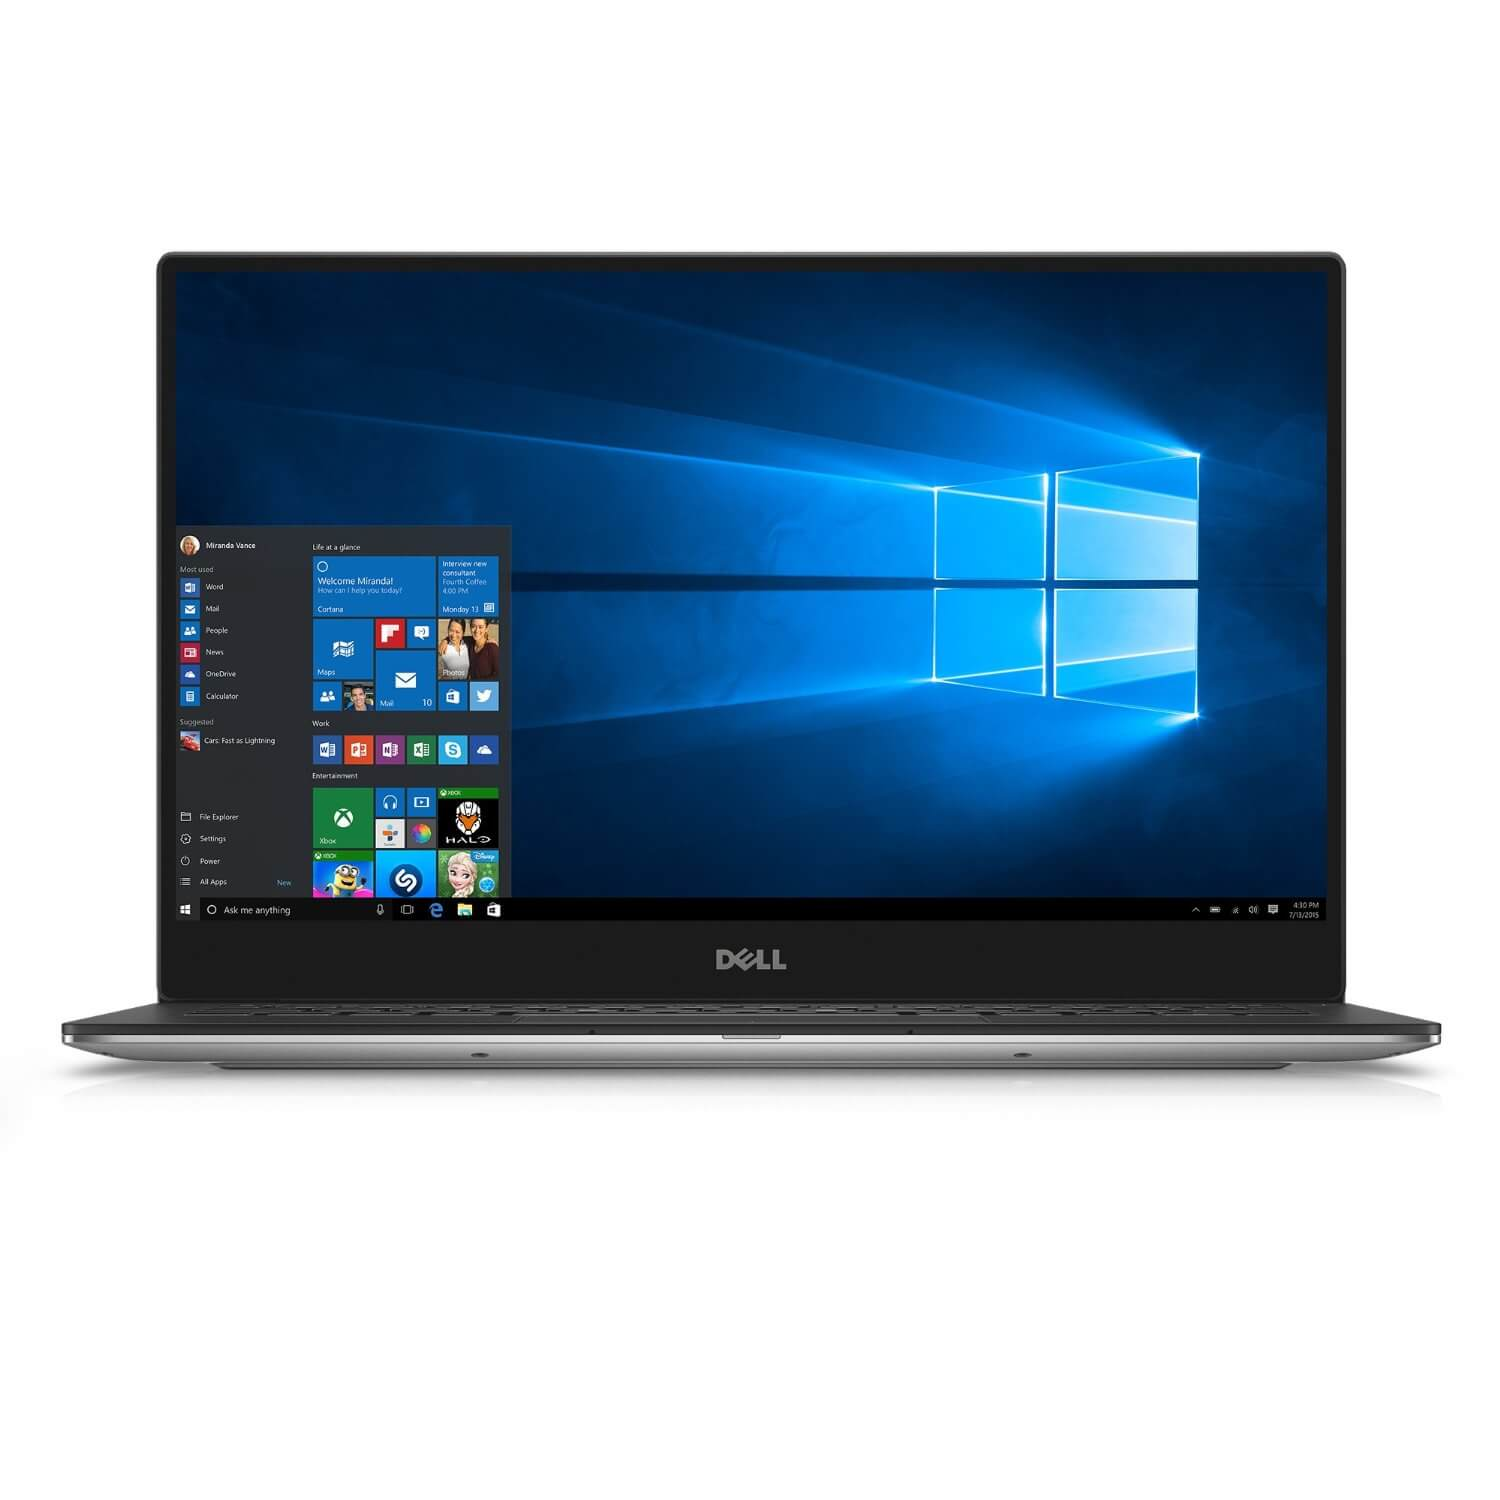 What is the Best laptop for business and personal use in 2017